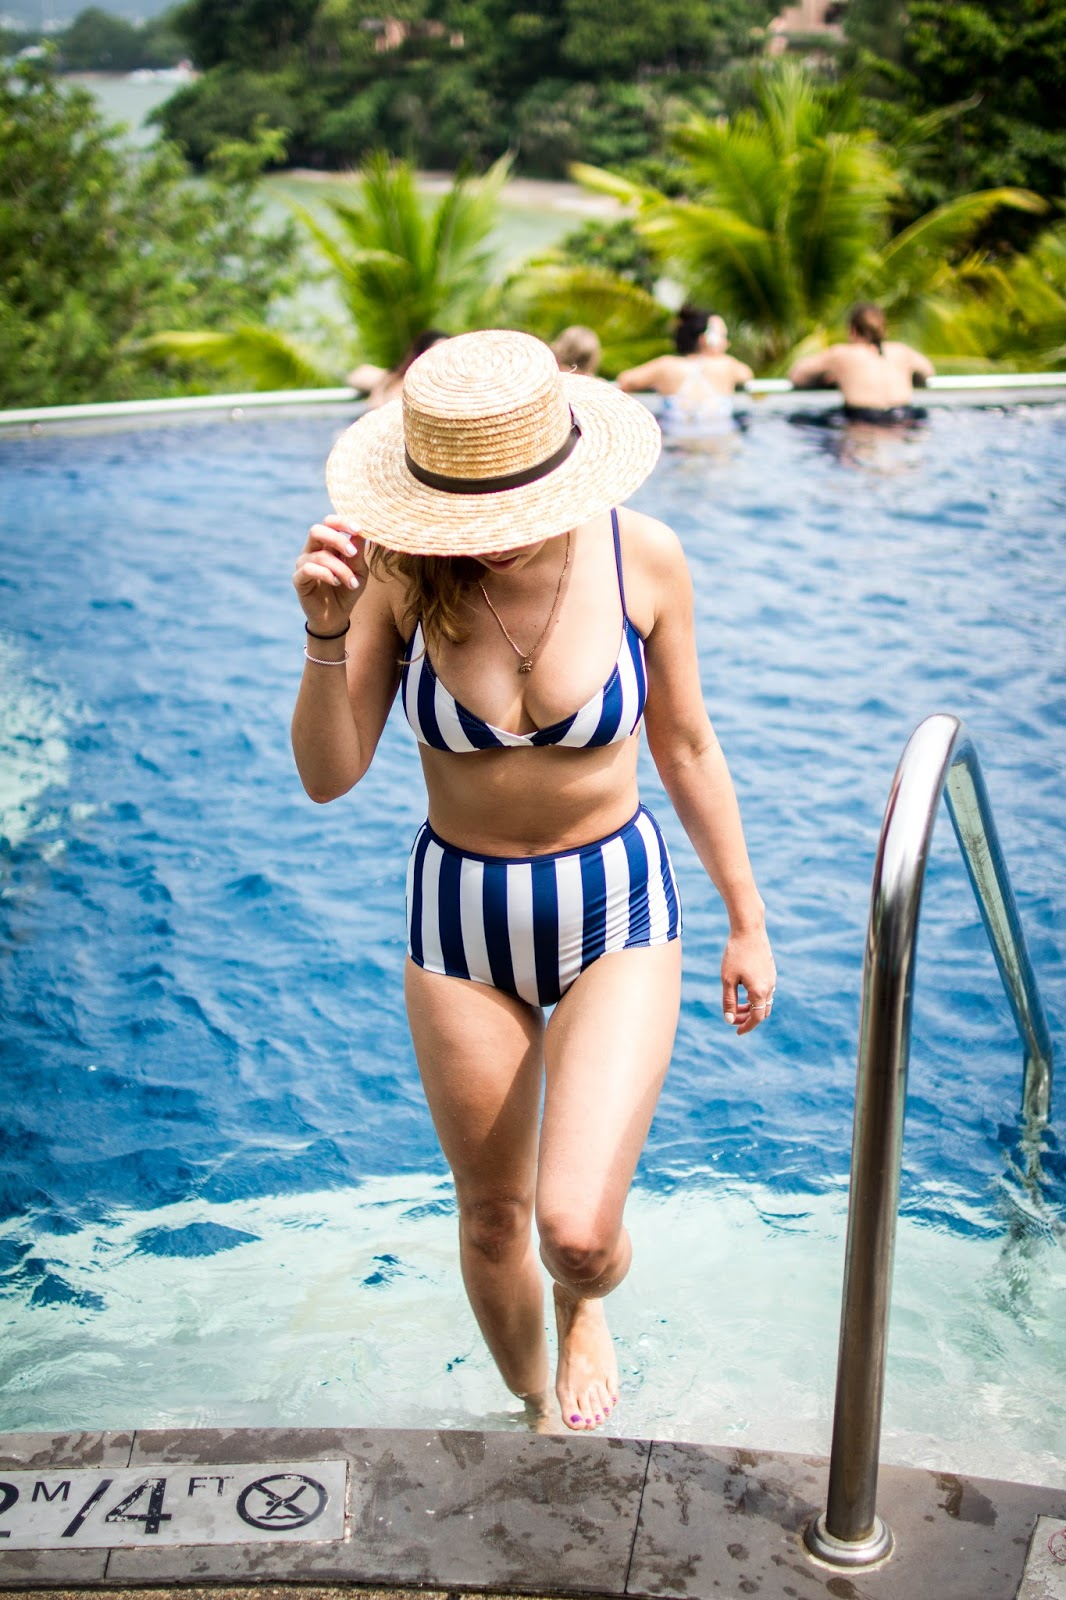 phuket-swim-travel-solid-striped-swimsuit-dc-blog-travelblog